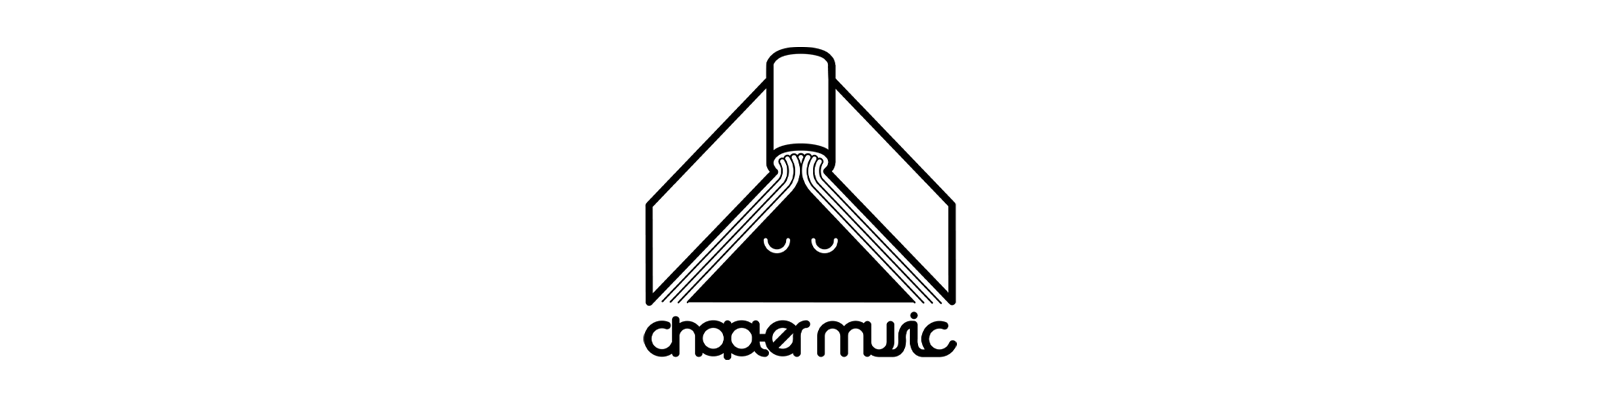 Chapter Music